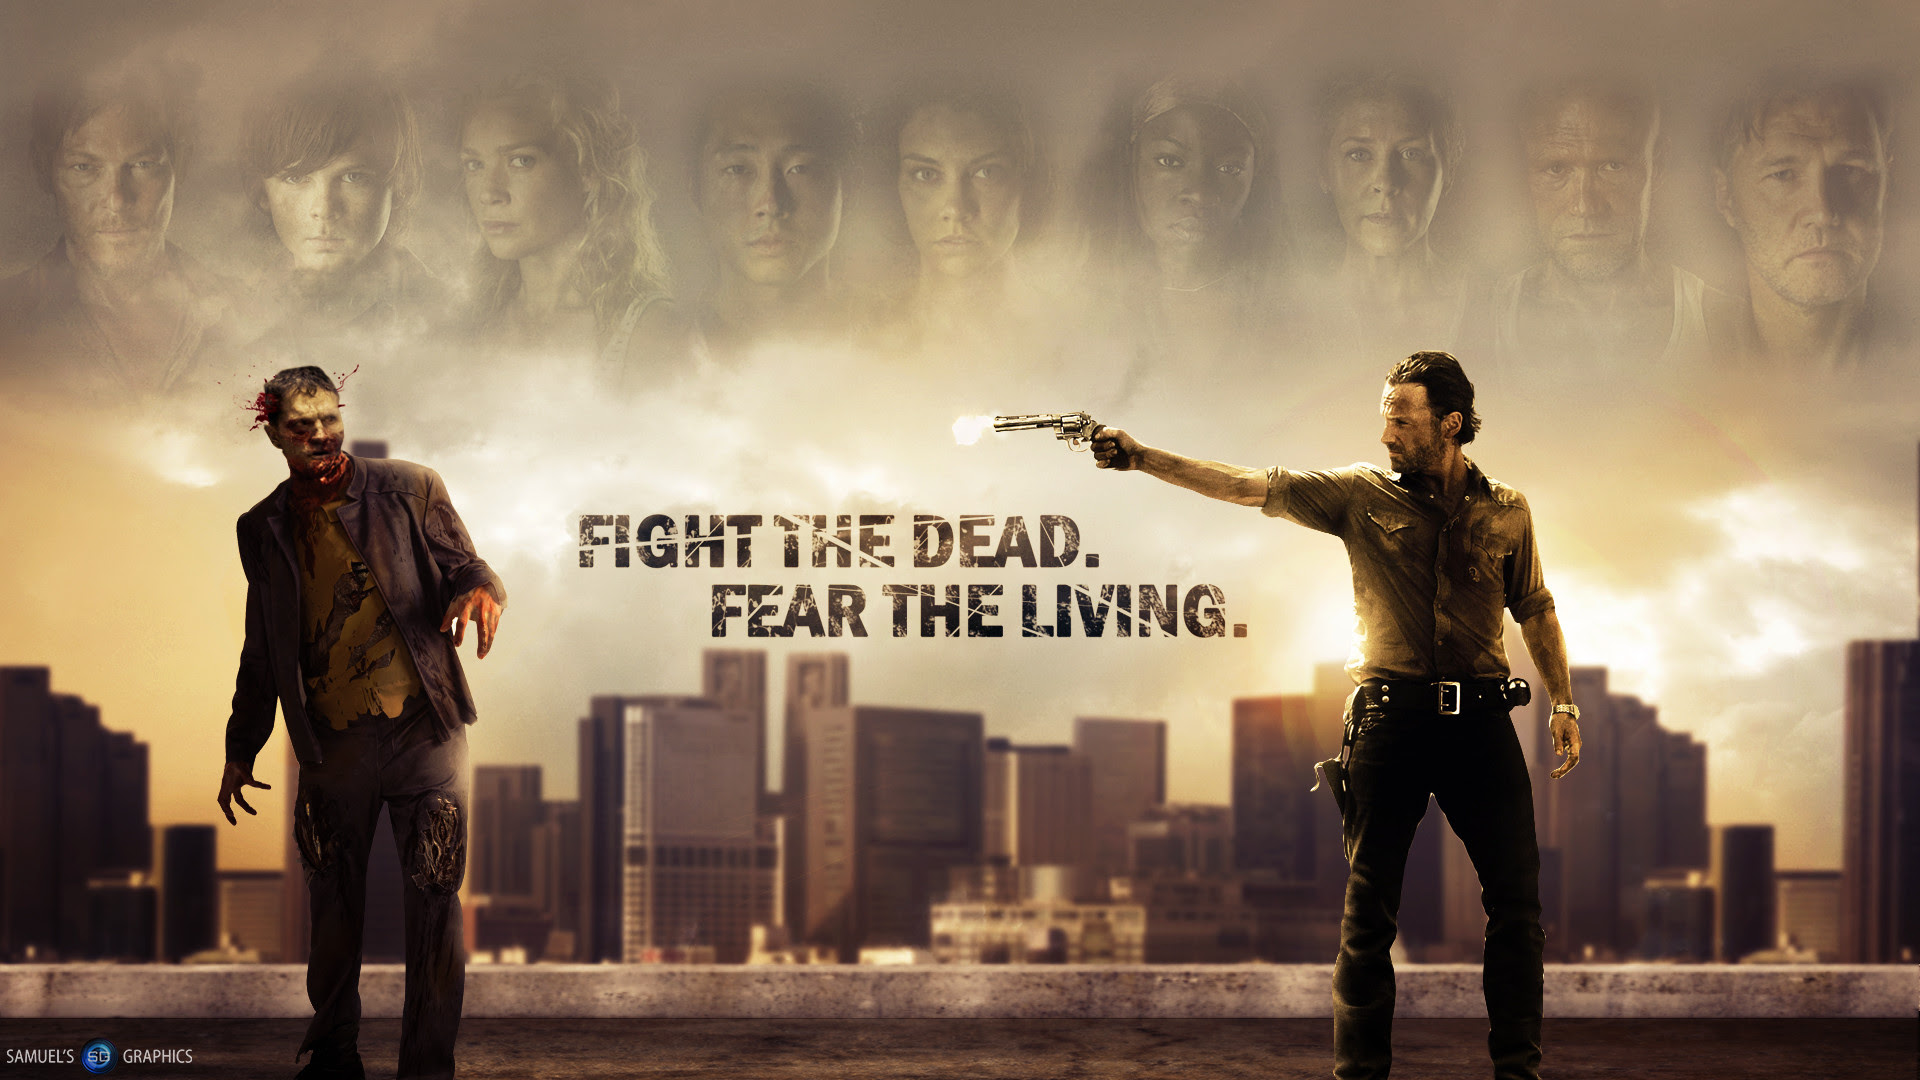 Walking Dead Background Wallpaper 68 Images